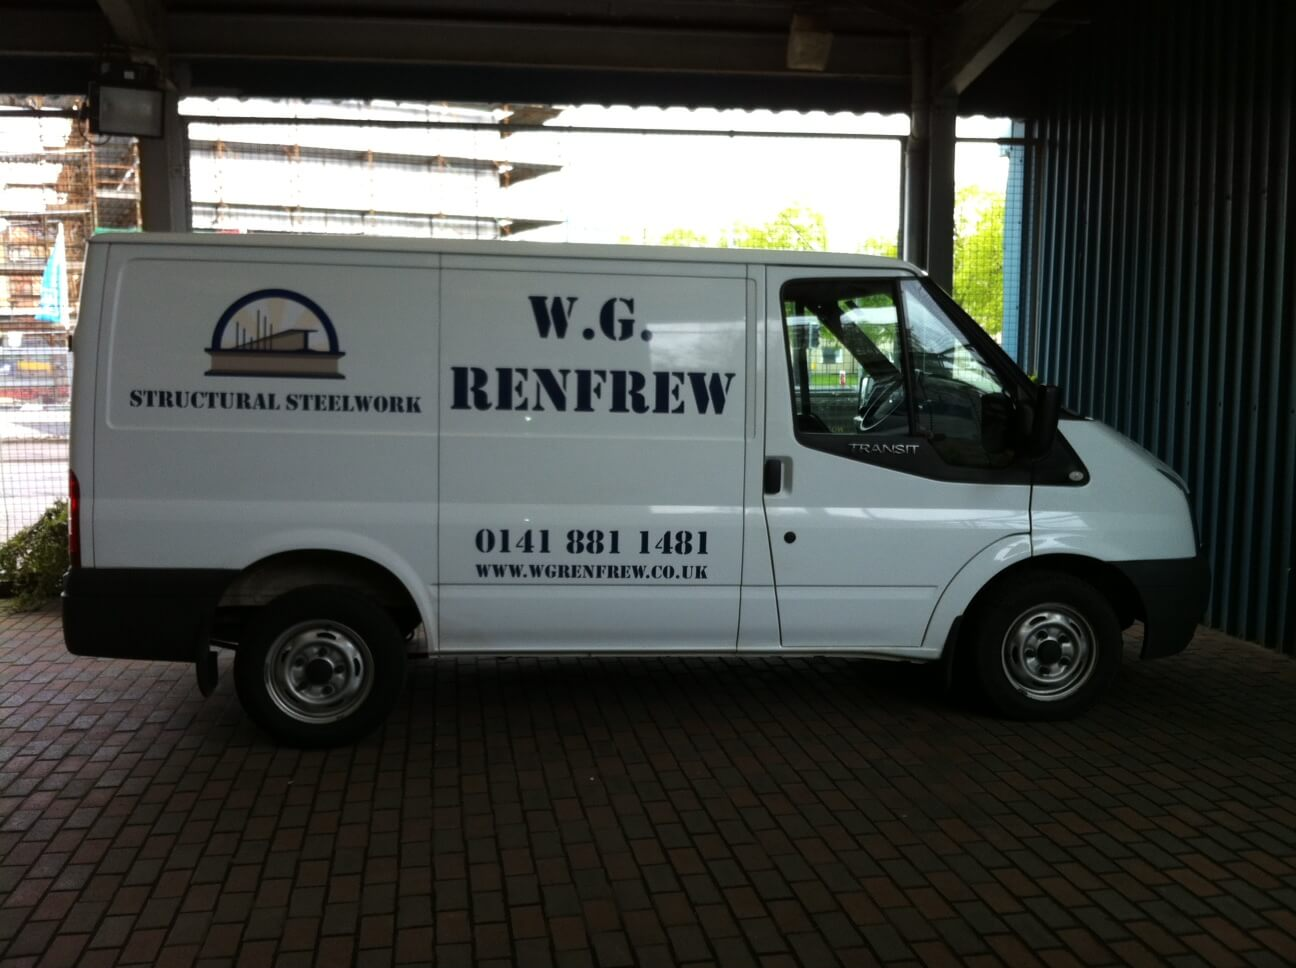 WG Renfrew Van - Glasgow Creative